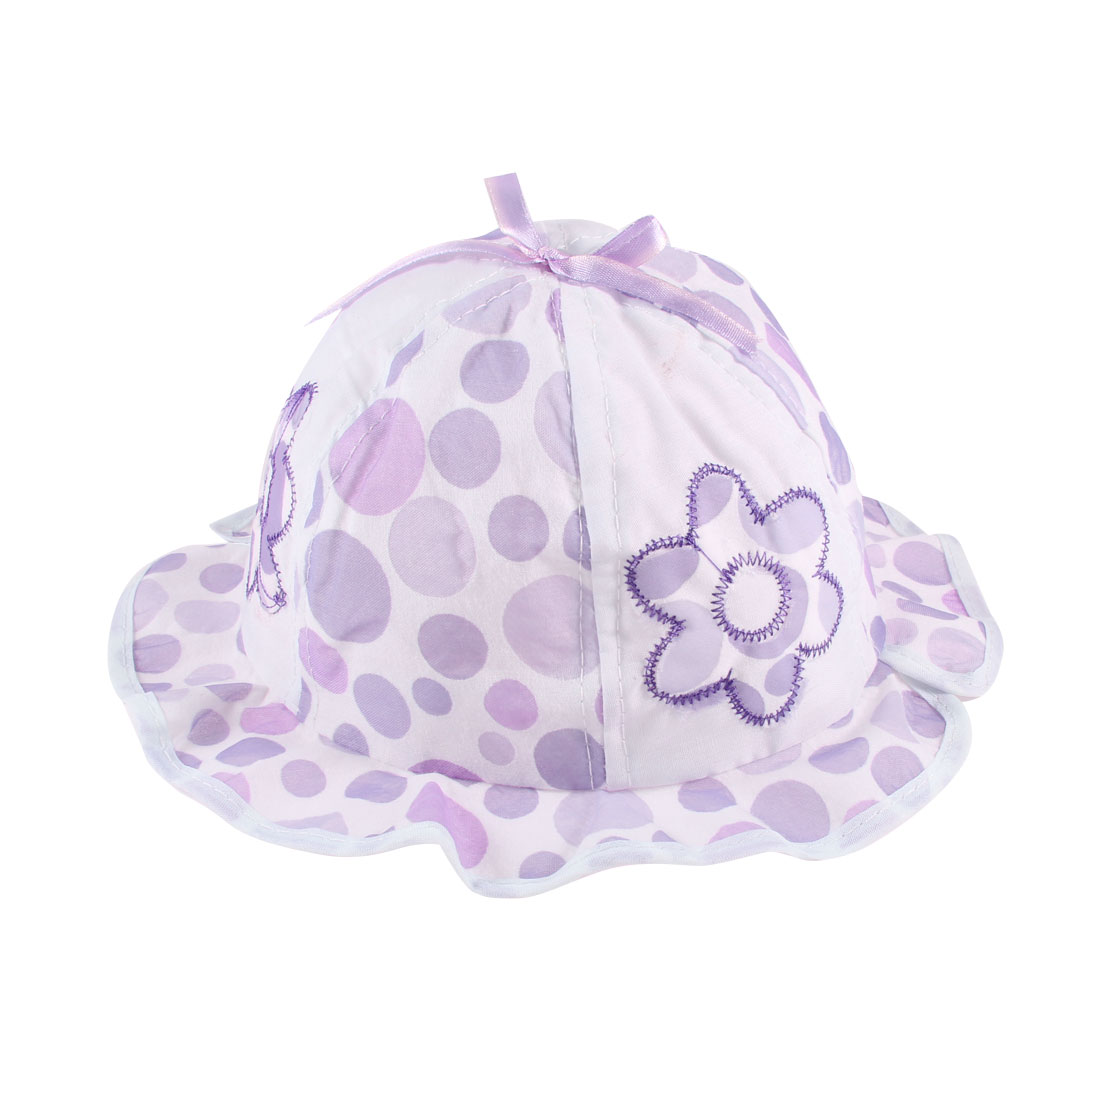 Wavy Brim Design Bowknot Accent Bob Hat Cap Purple White for 0-6 Months Baby Girl